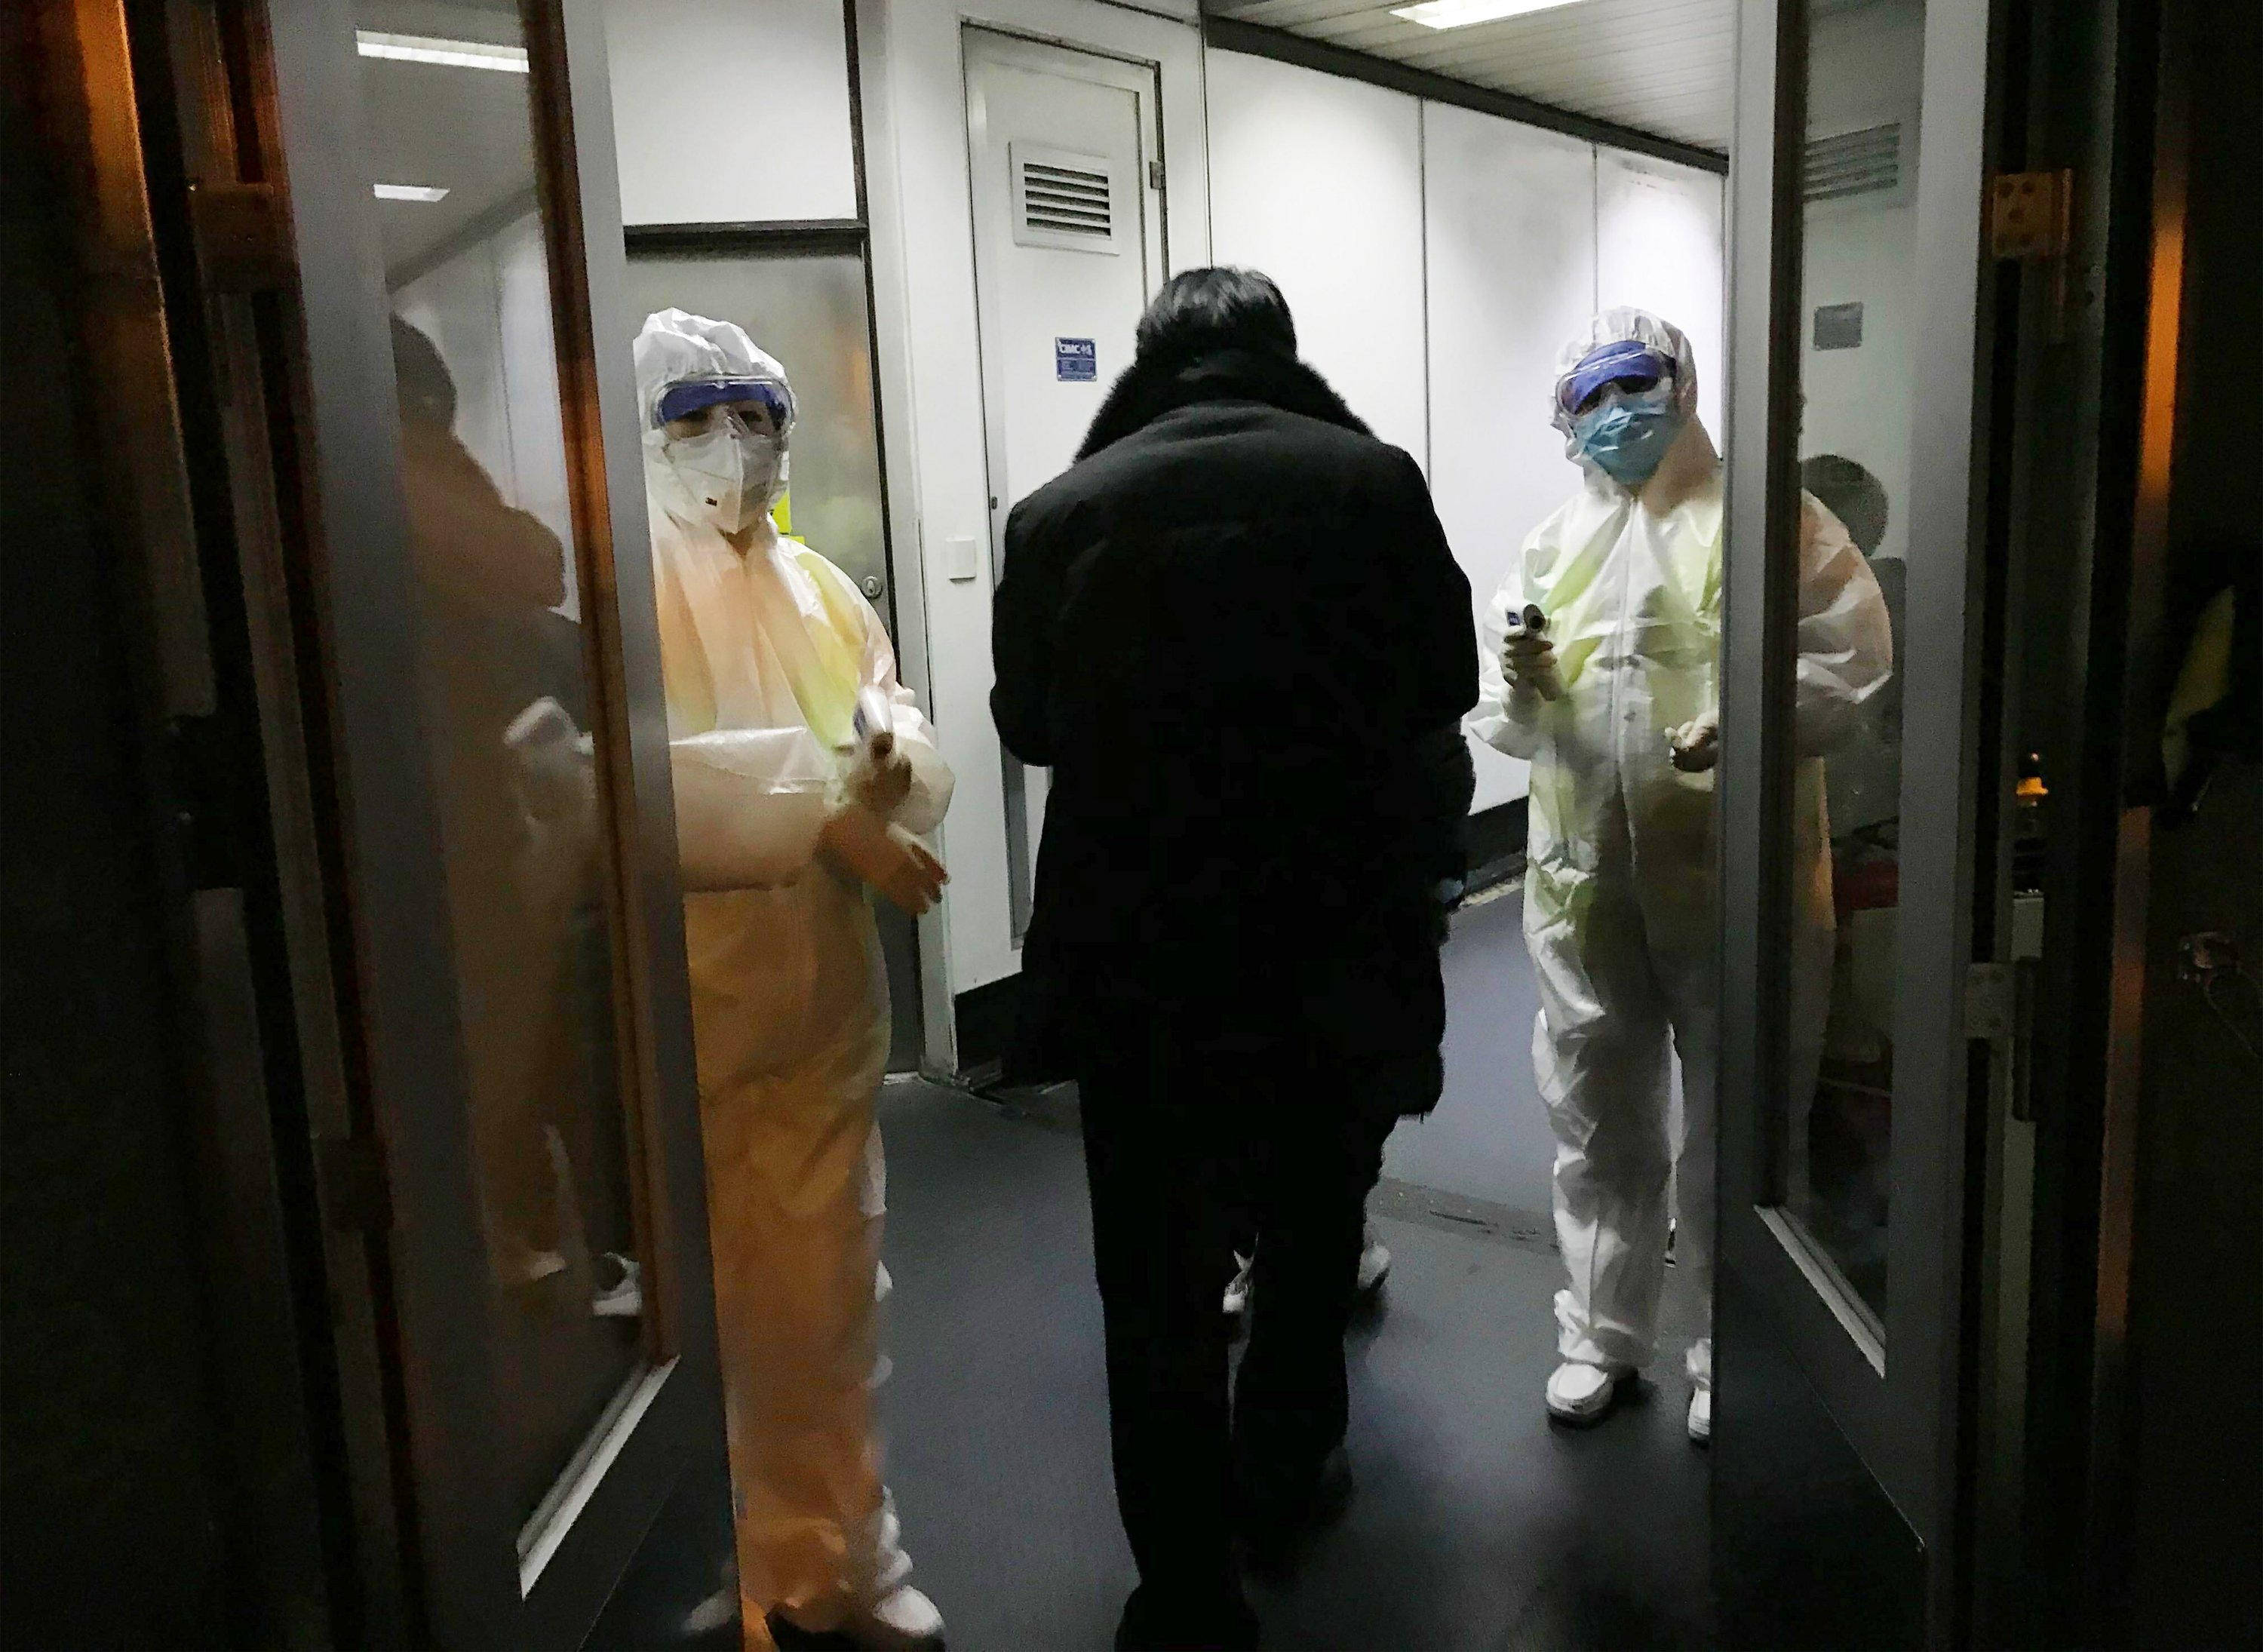 Panel: China WHO should have acted quicker to stop pandemic – The Associated Press